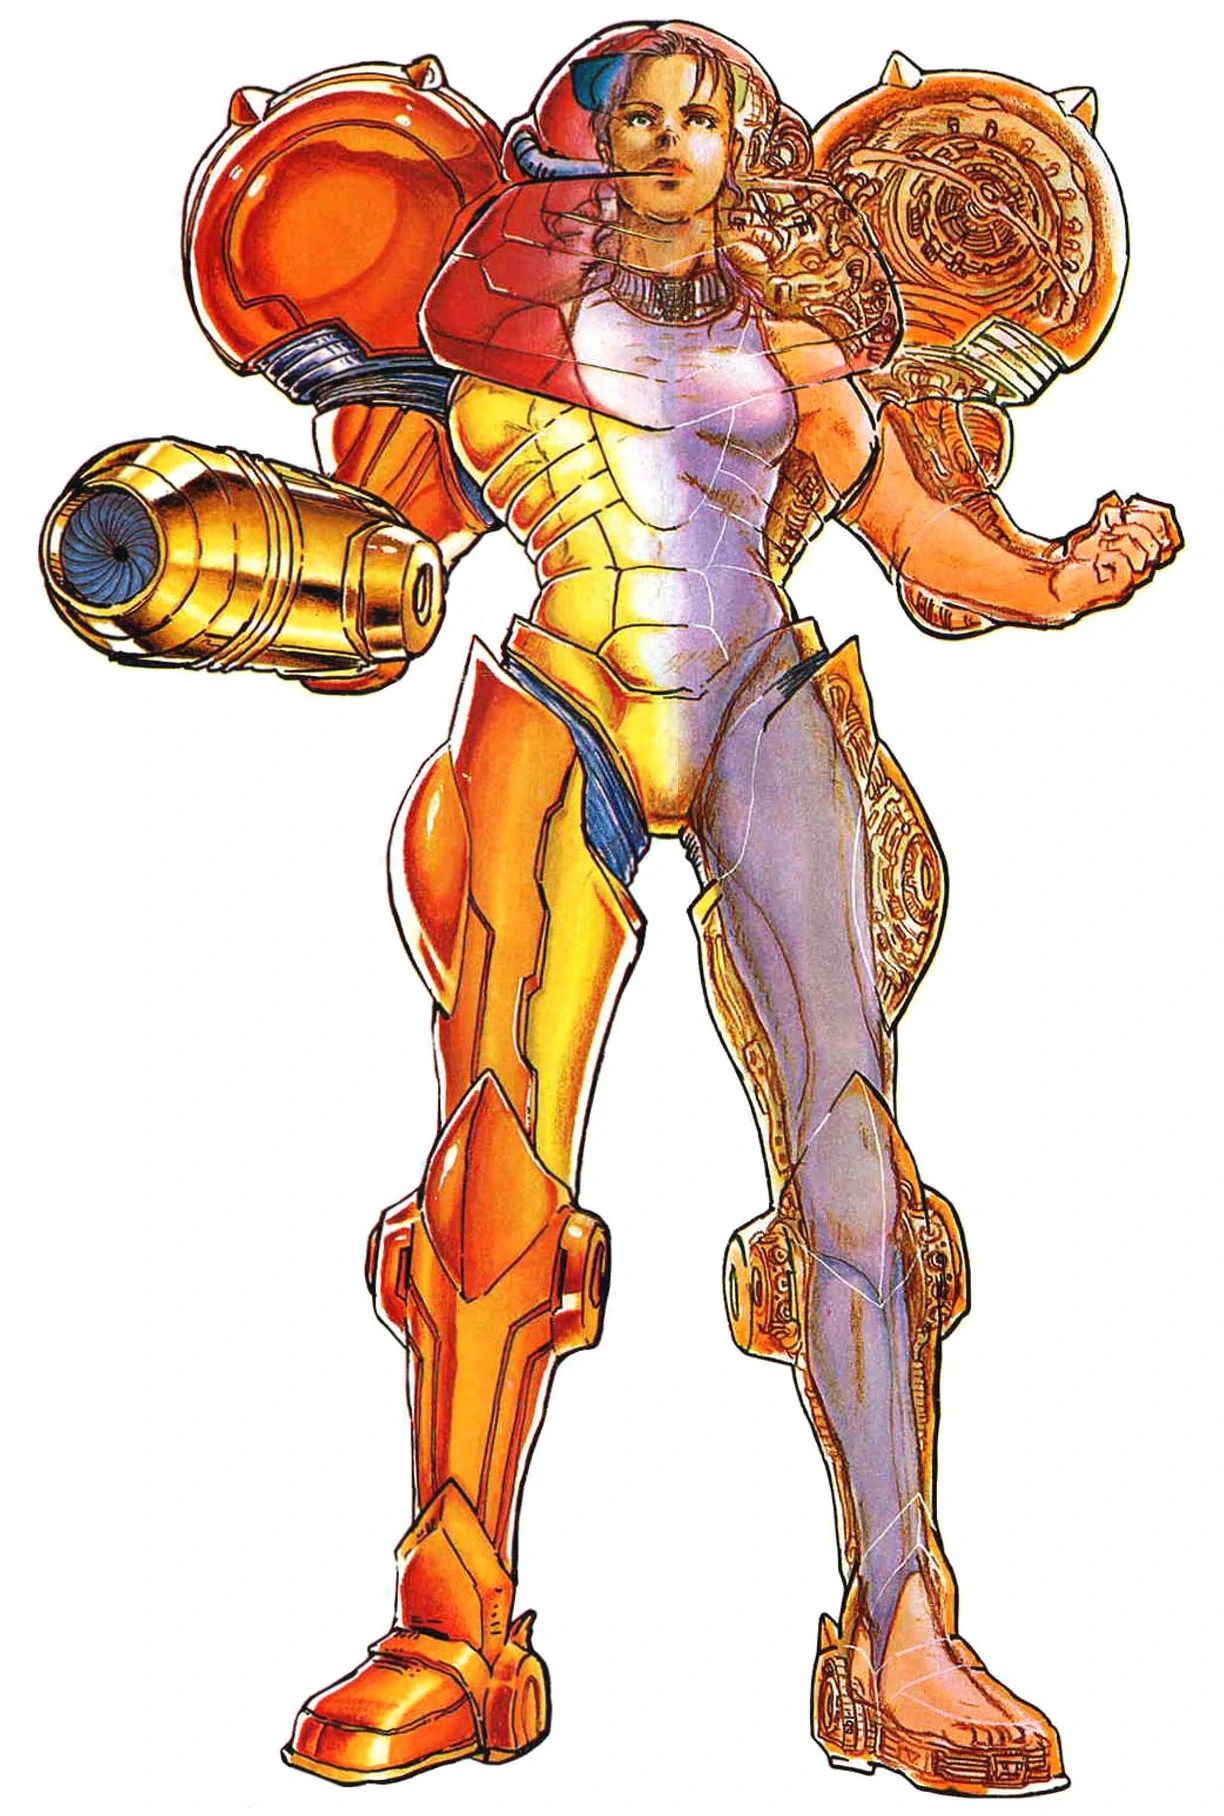 Metroid I Heard The Next Game Is A Monologue About